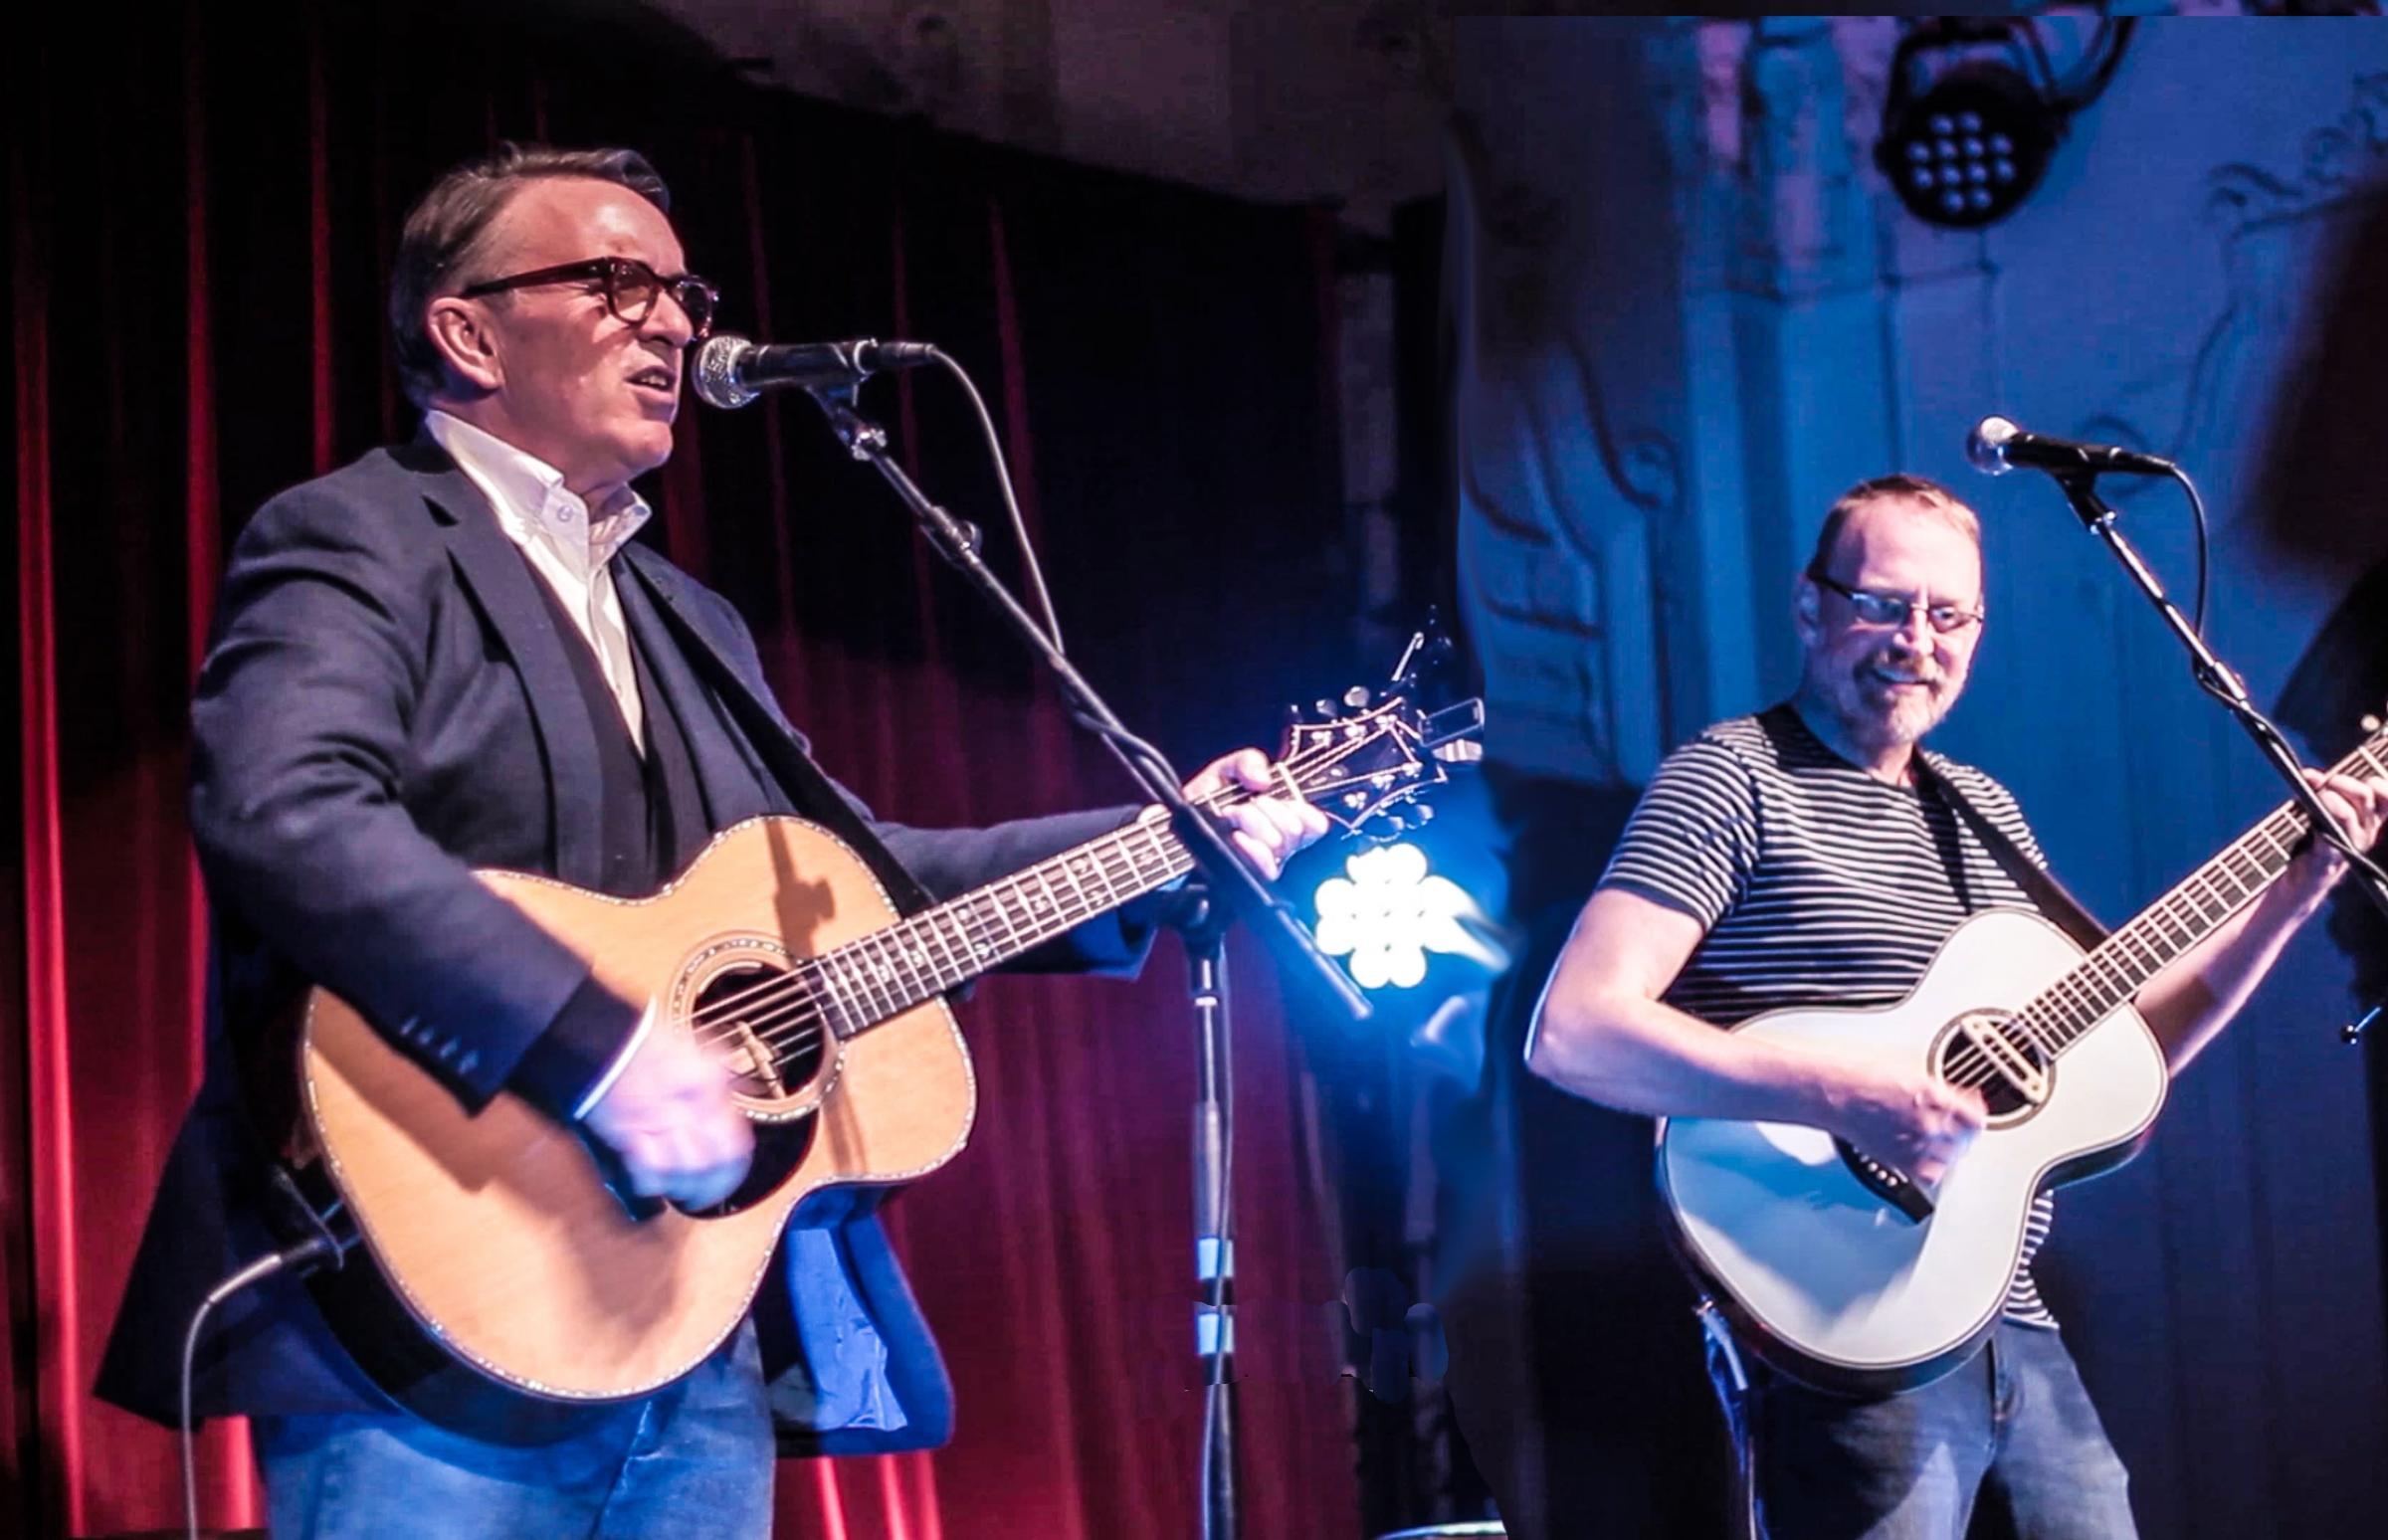 Chris Difford and Boo Hewerdine